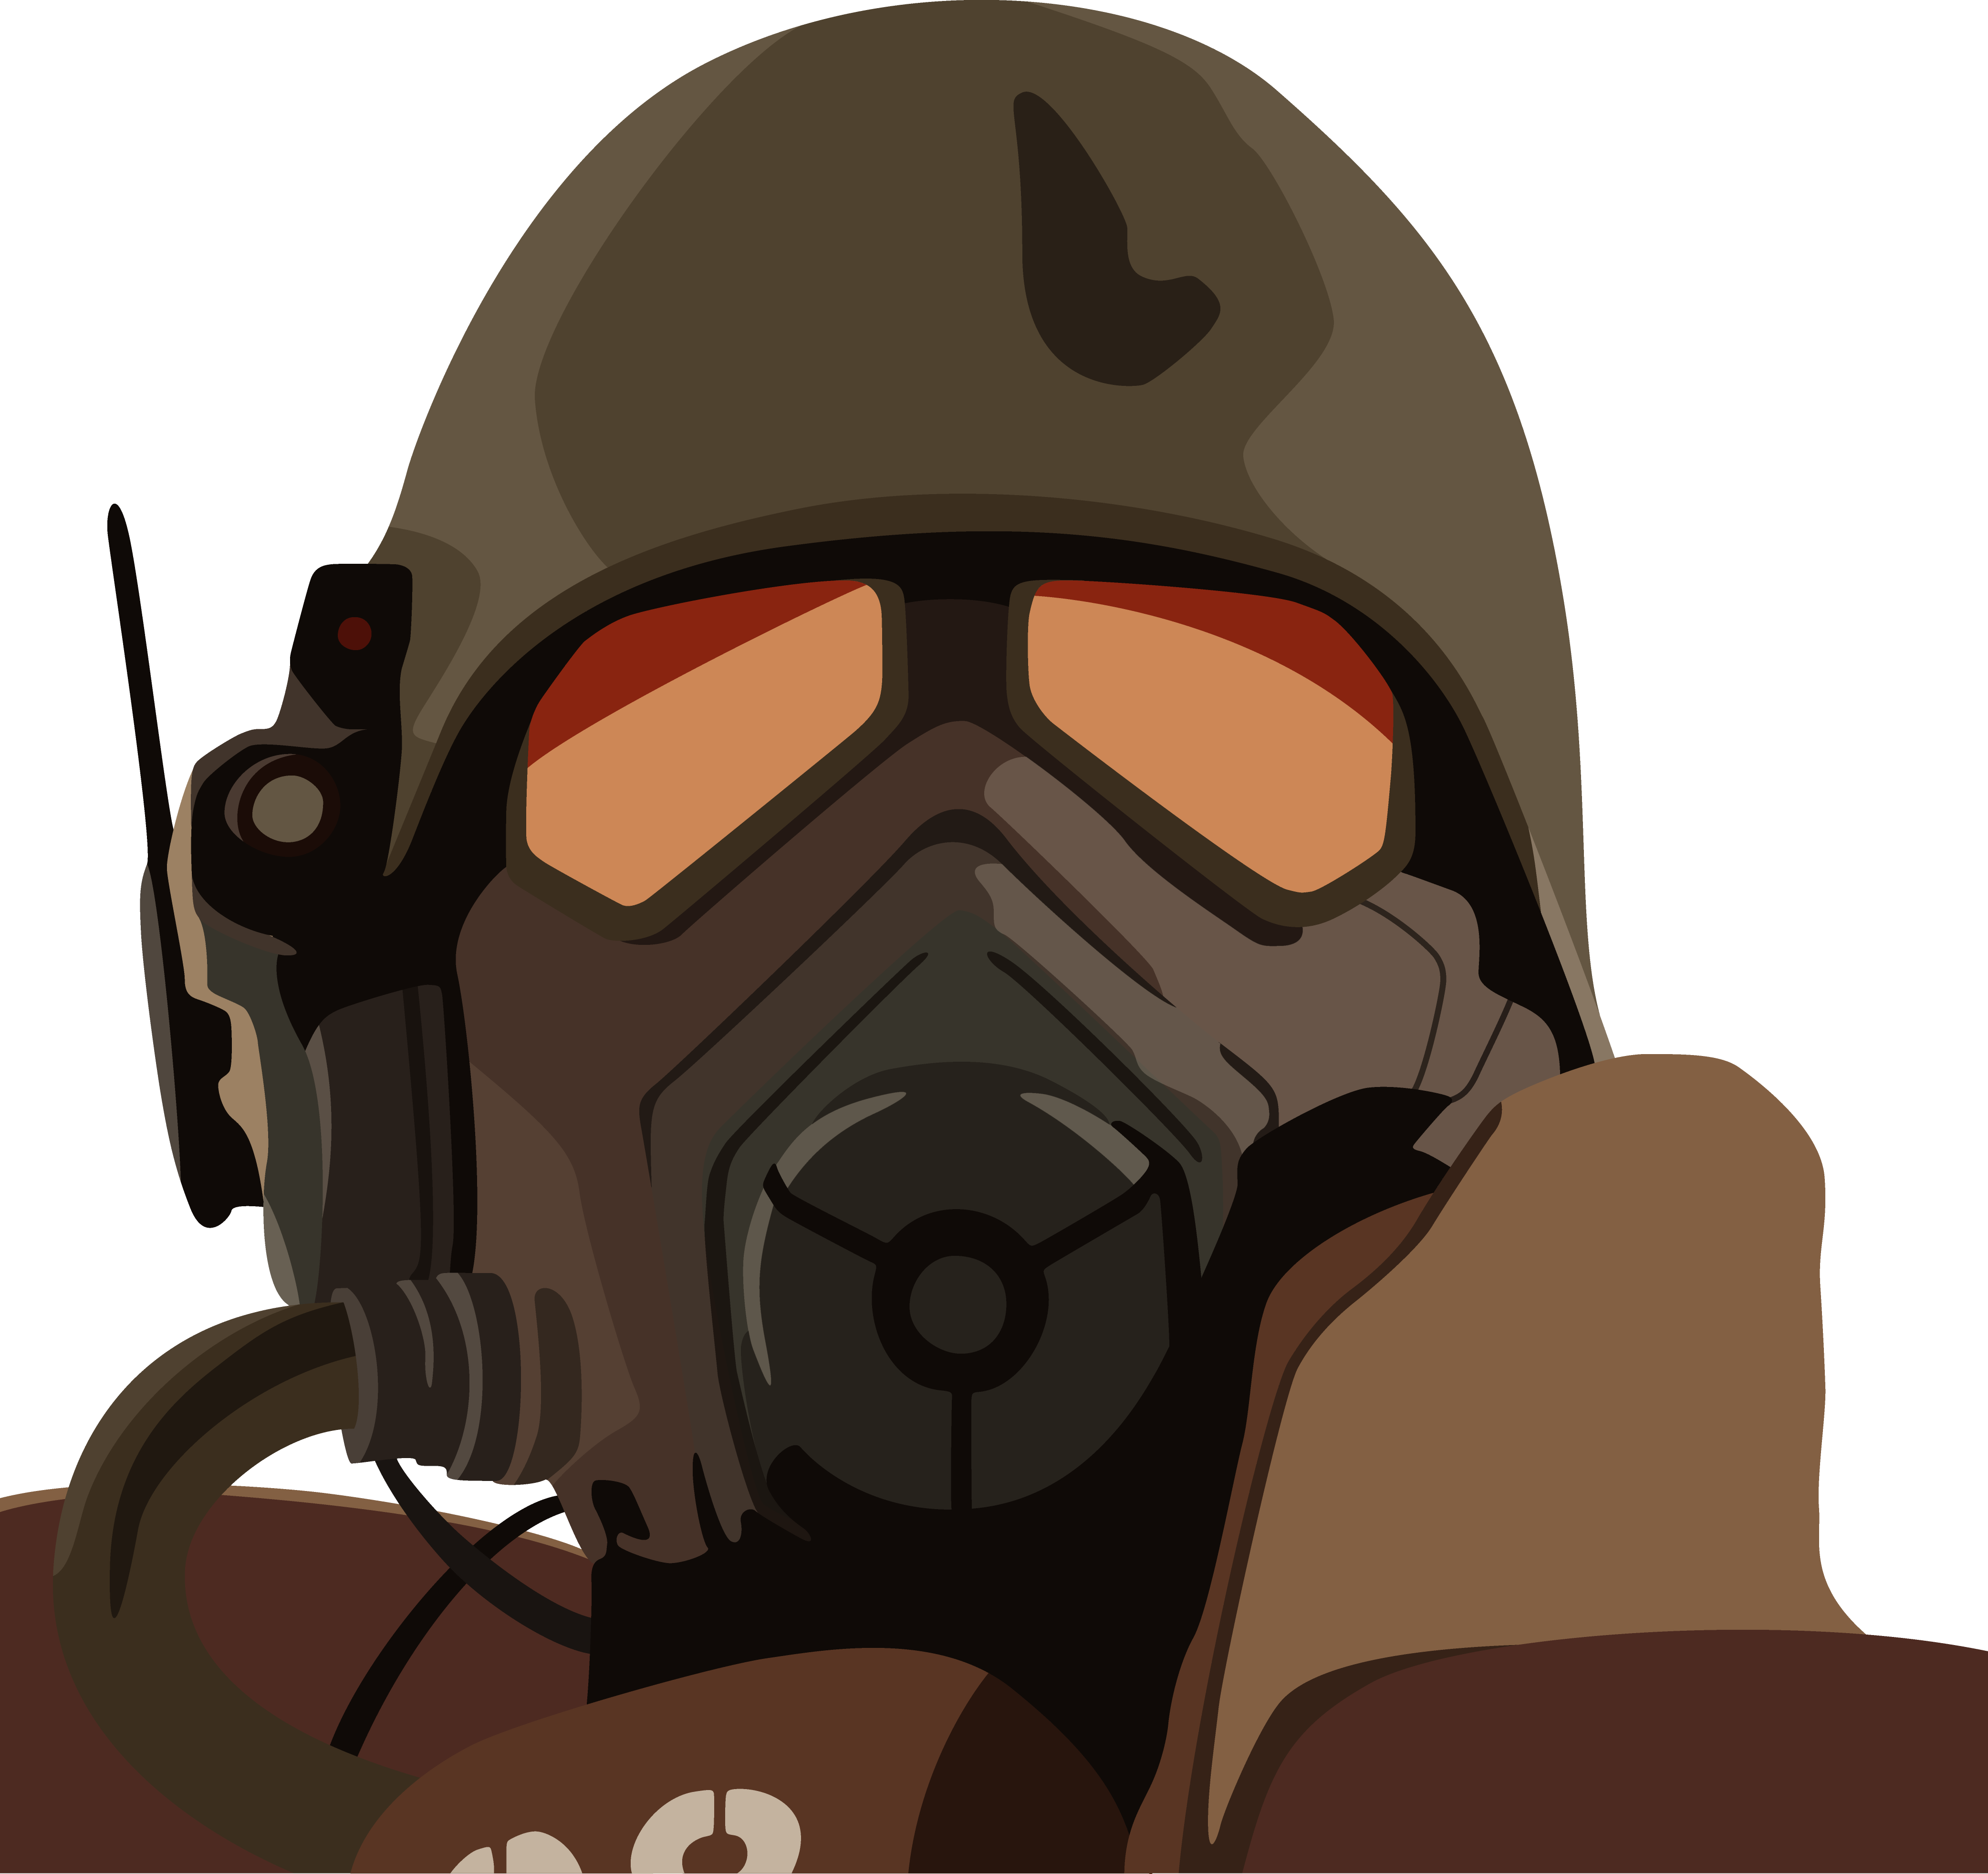 Old drawing gas mask. Ncr ranger armor vector